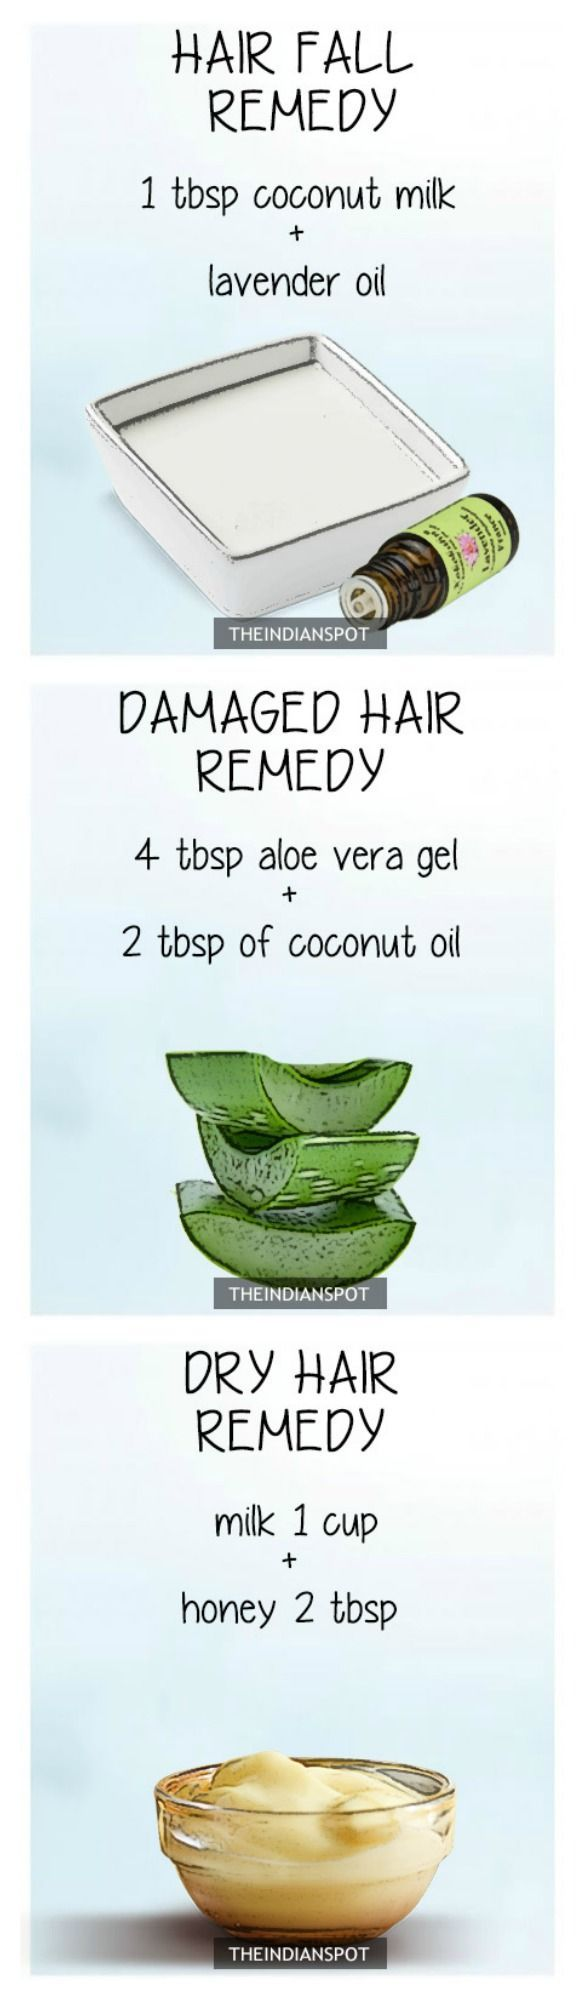 Remedies for every hair problem!